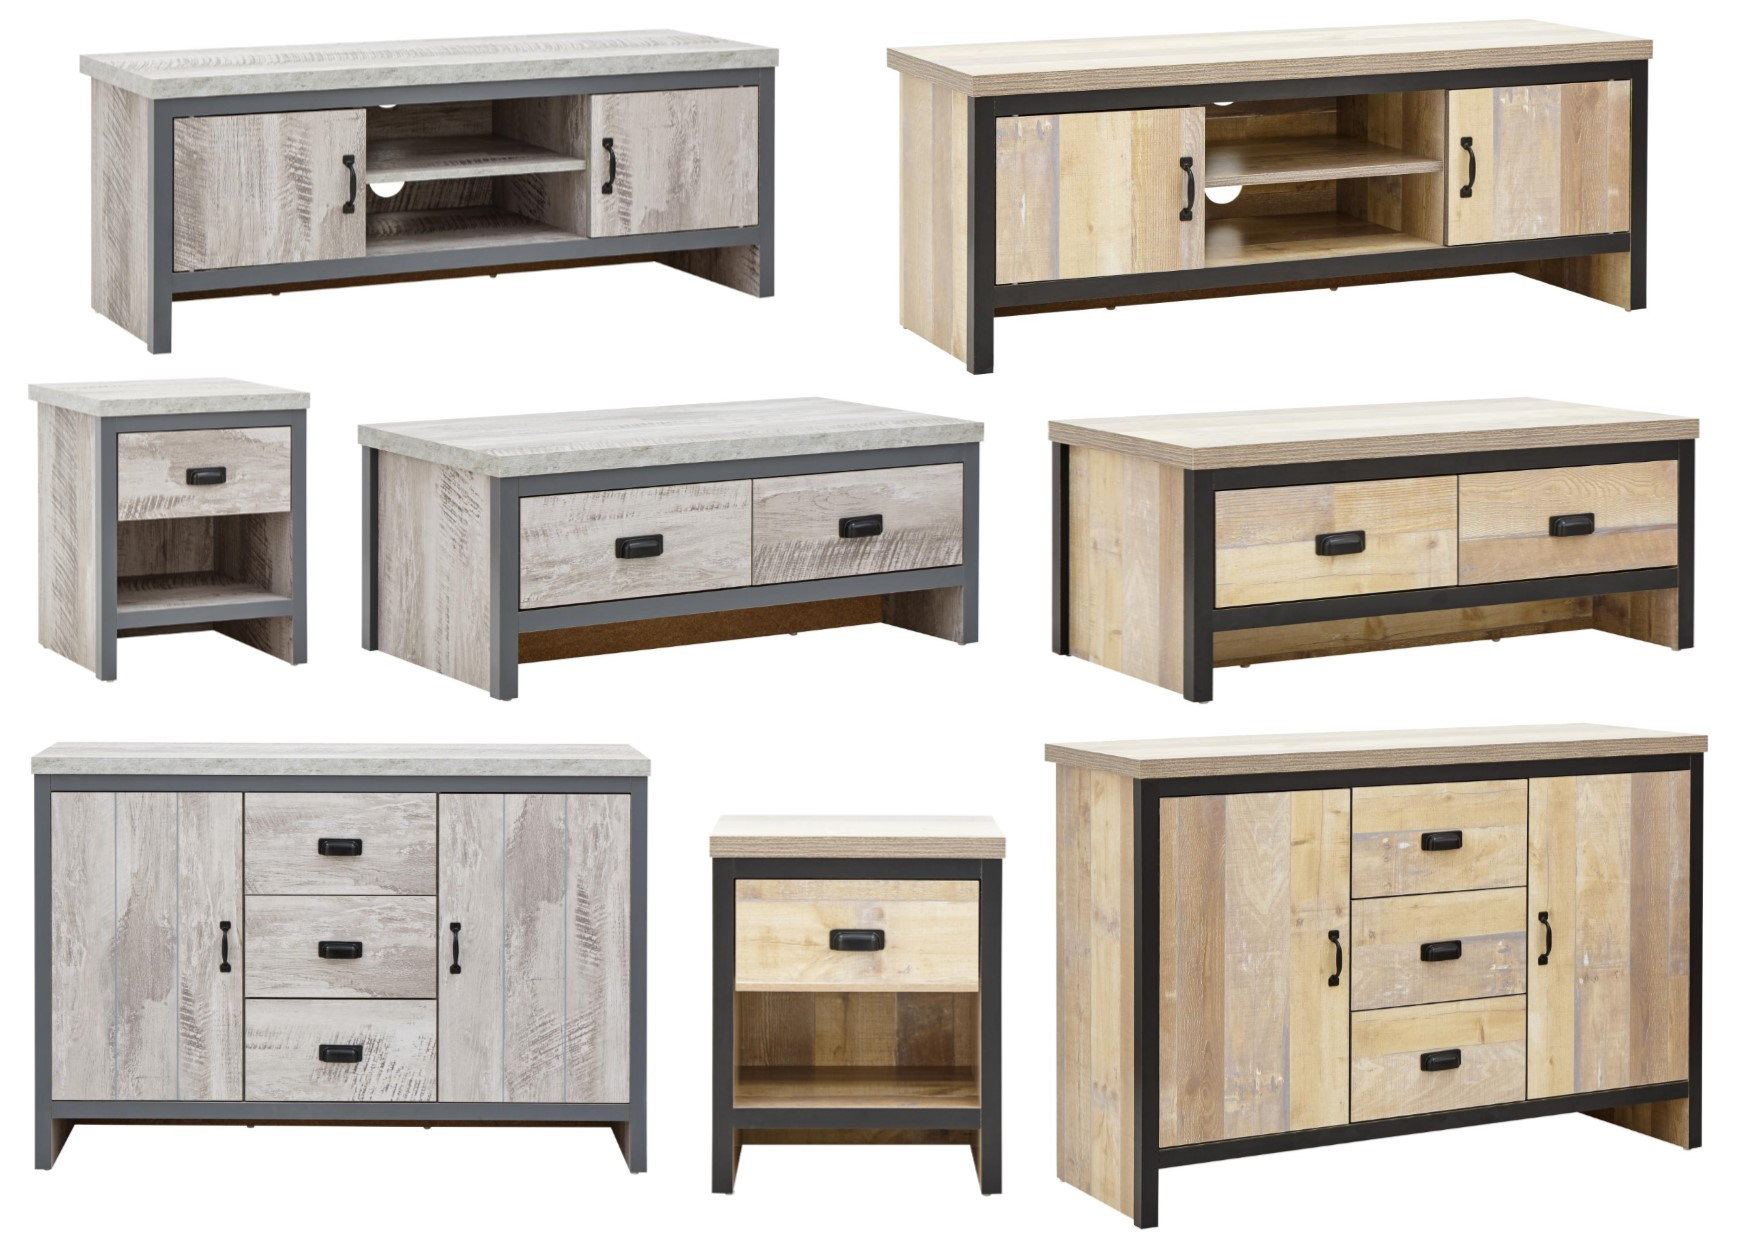 Details about Boston Grey or Oak Urban Design Living Room Furniture -  Tables Sideboard TV Unit